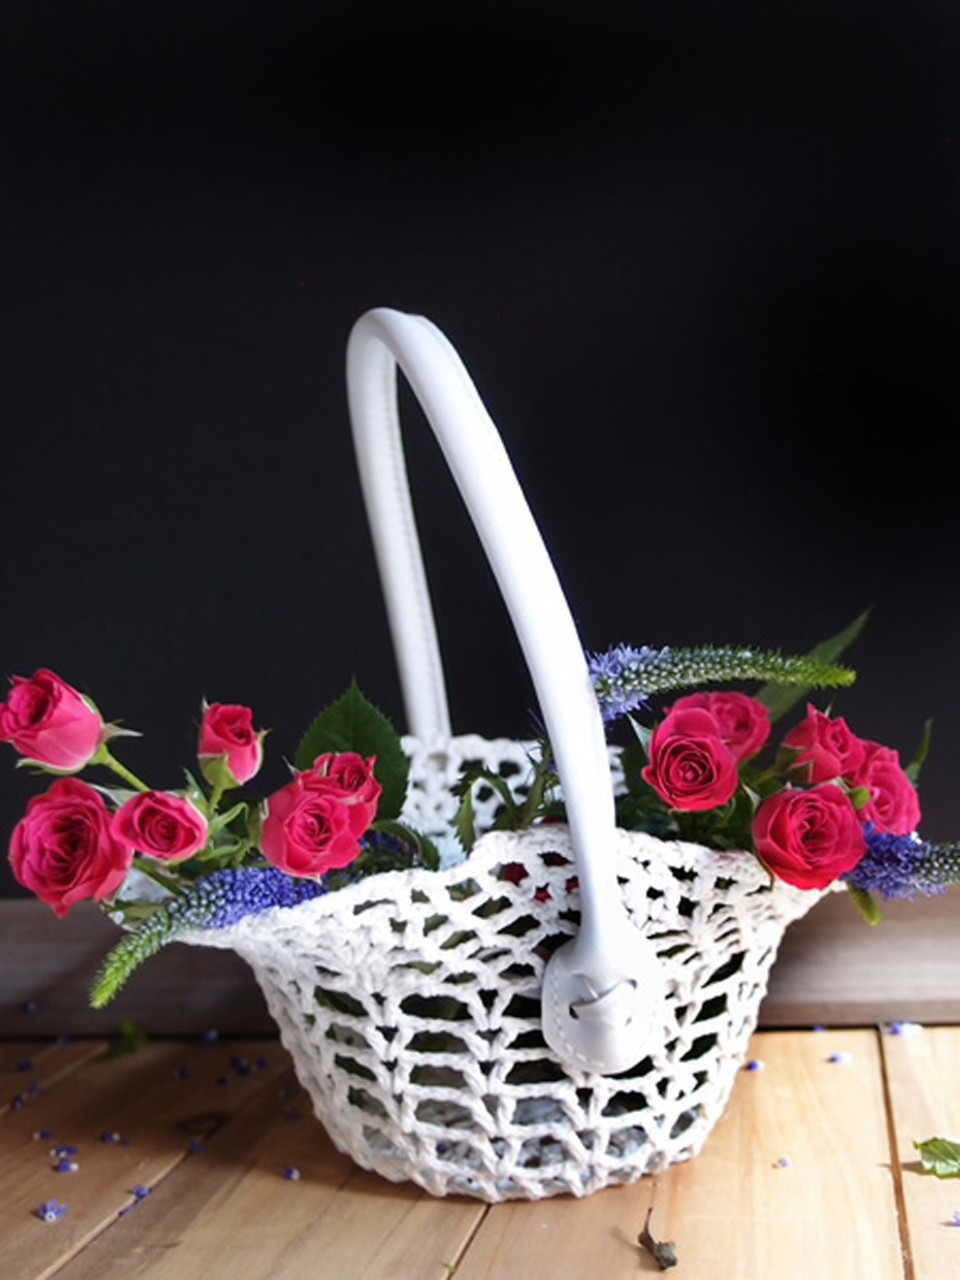 Flower Girl Basket, Wholesale Lace Baskets, Wholesale Floral Baskets | Packaging Decor